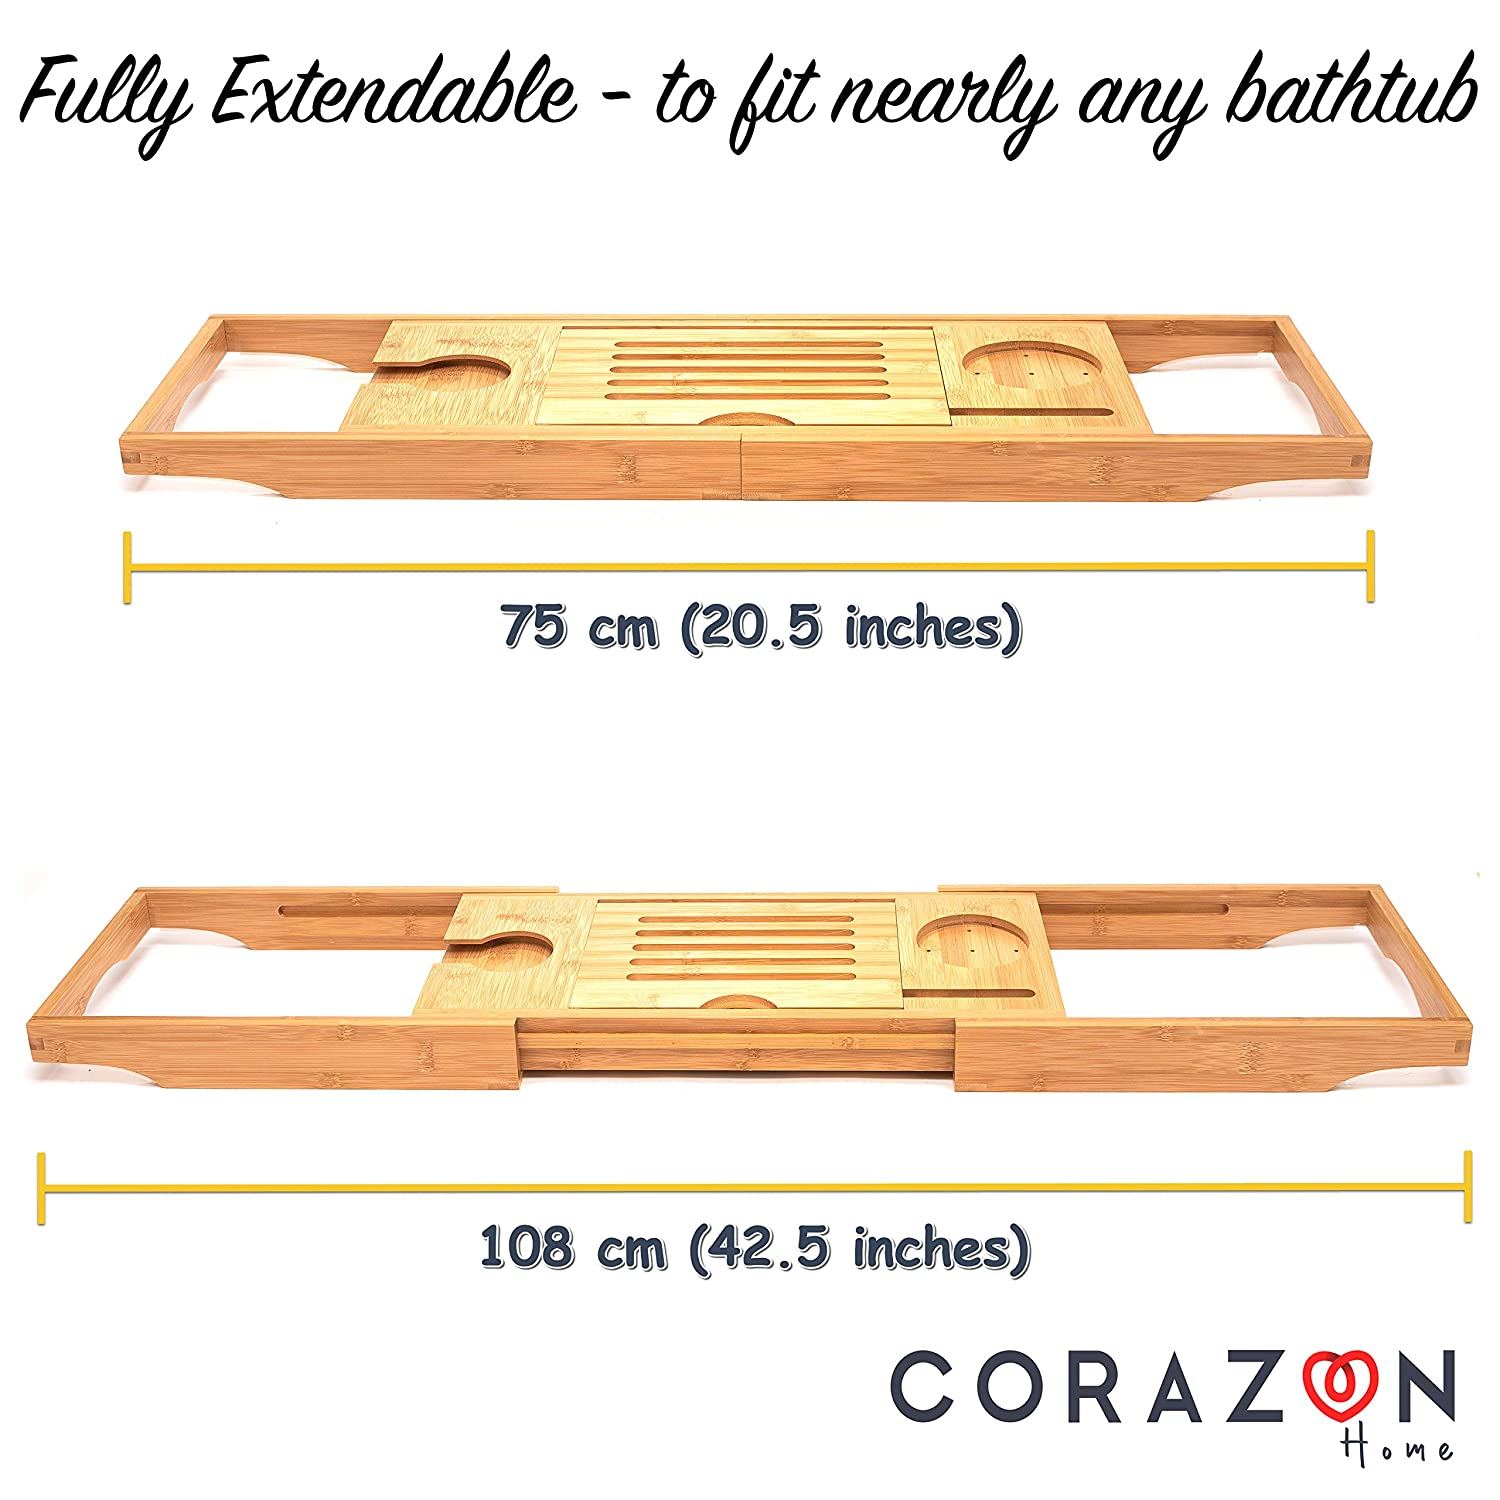 Candle//Glass Holder Phone Holder and Wine Glass slots Extendable Table Luxury Bamboo Bath Tray Wooden Bathtub Caddy and Breakfast Tray with Ipad//Tablet Holder Perfect Bathroom Accessories CORAZON HOME .